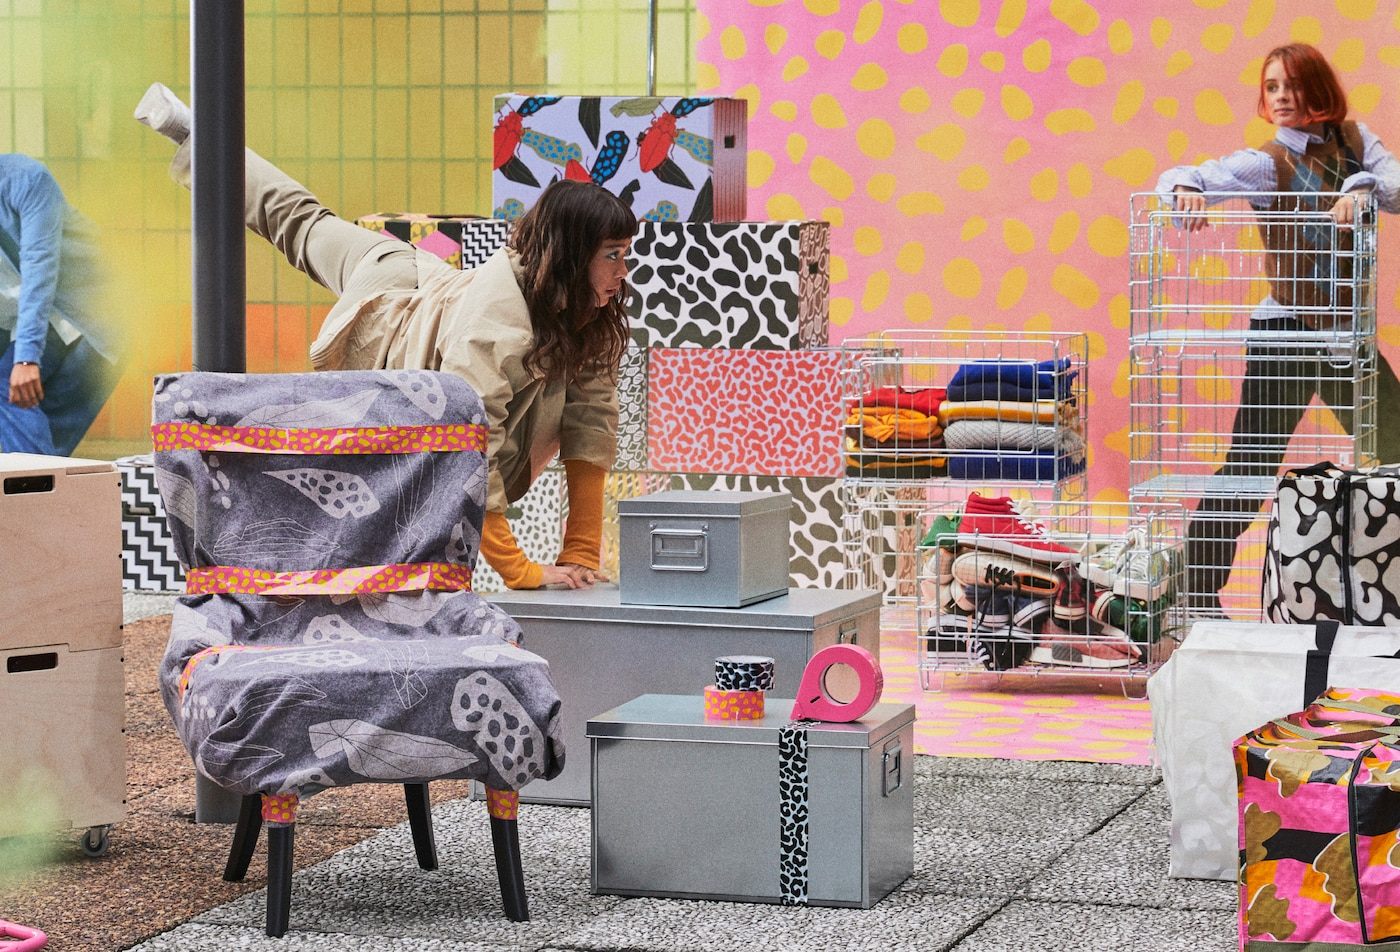 OMBYTE boxes made from cardboard with wild patterns, metal and wire. A grey blanket is wrapped and taped around a chair.